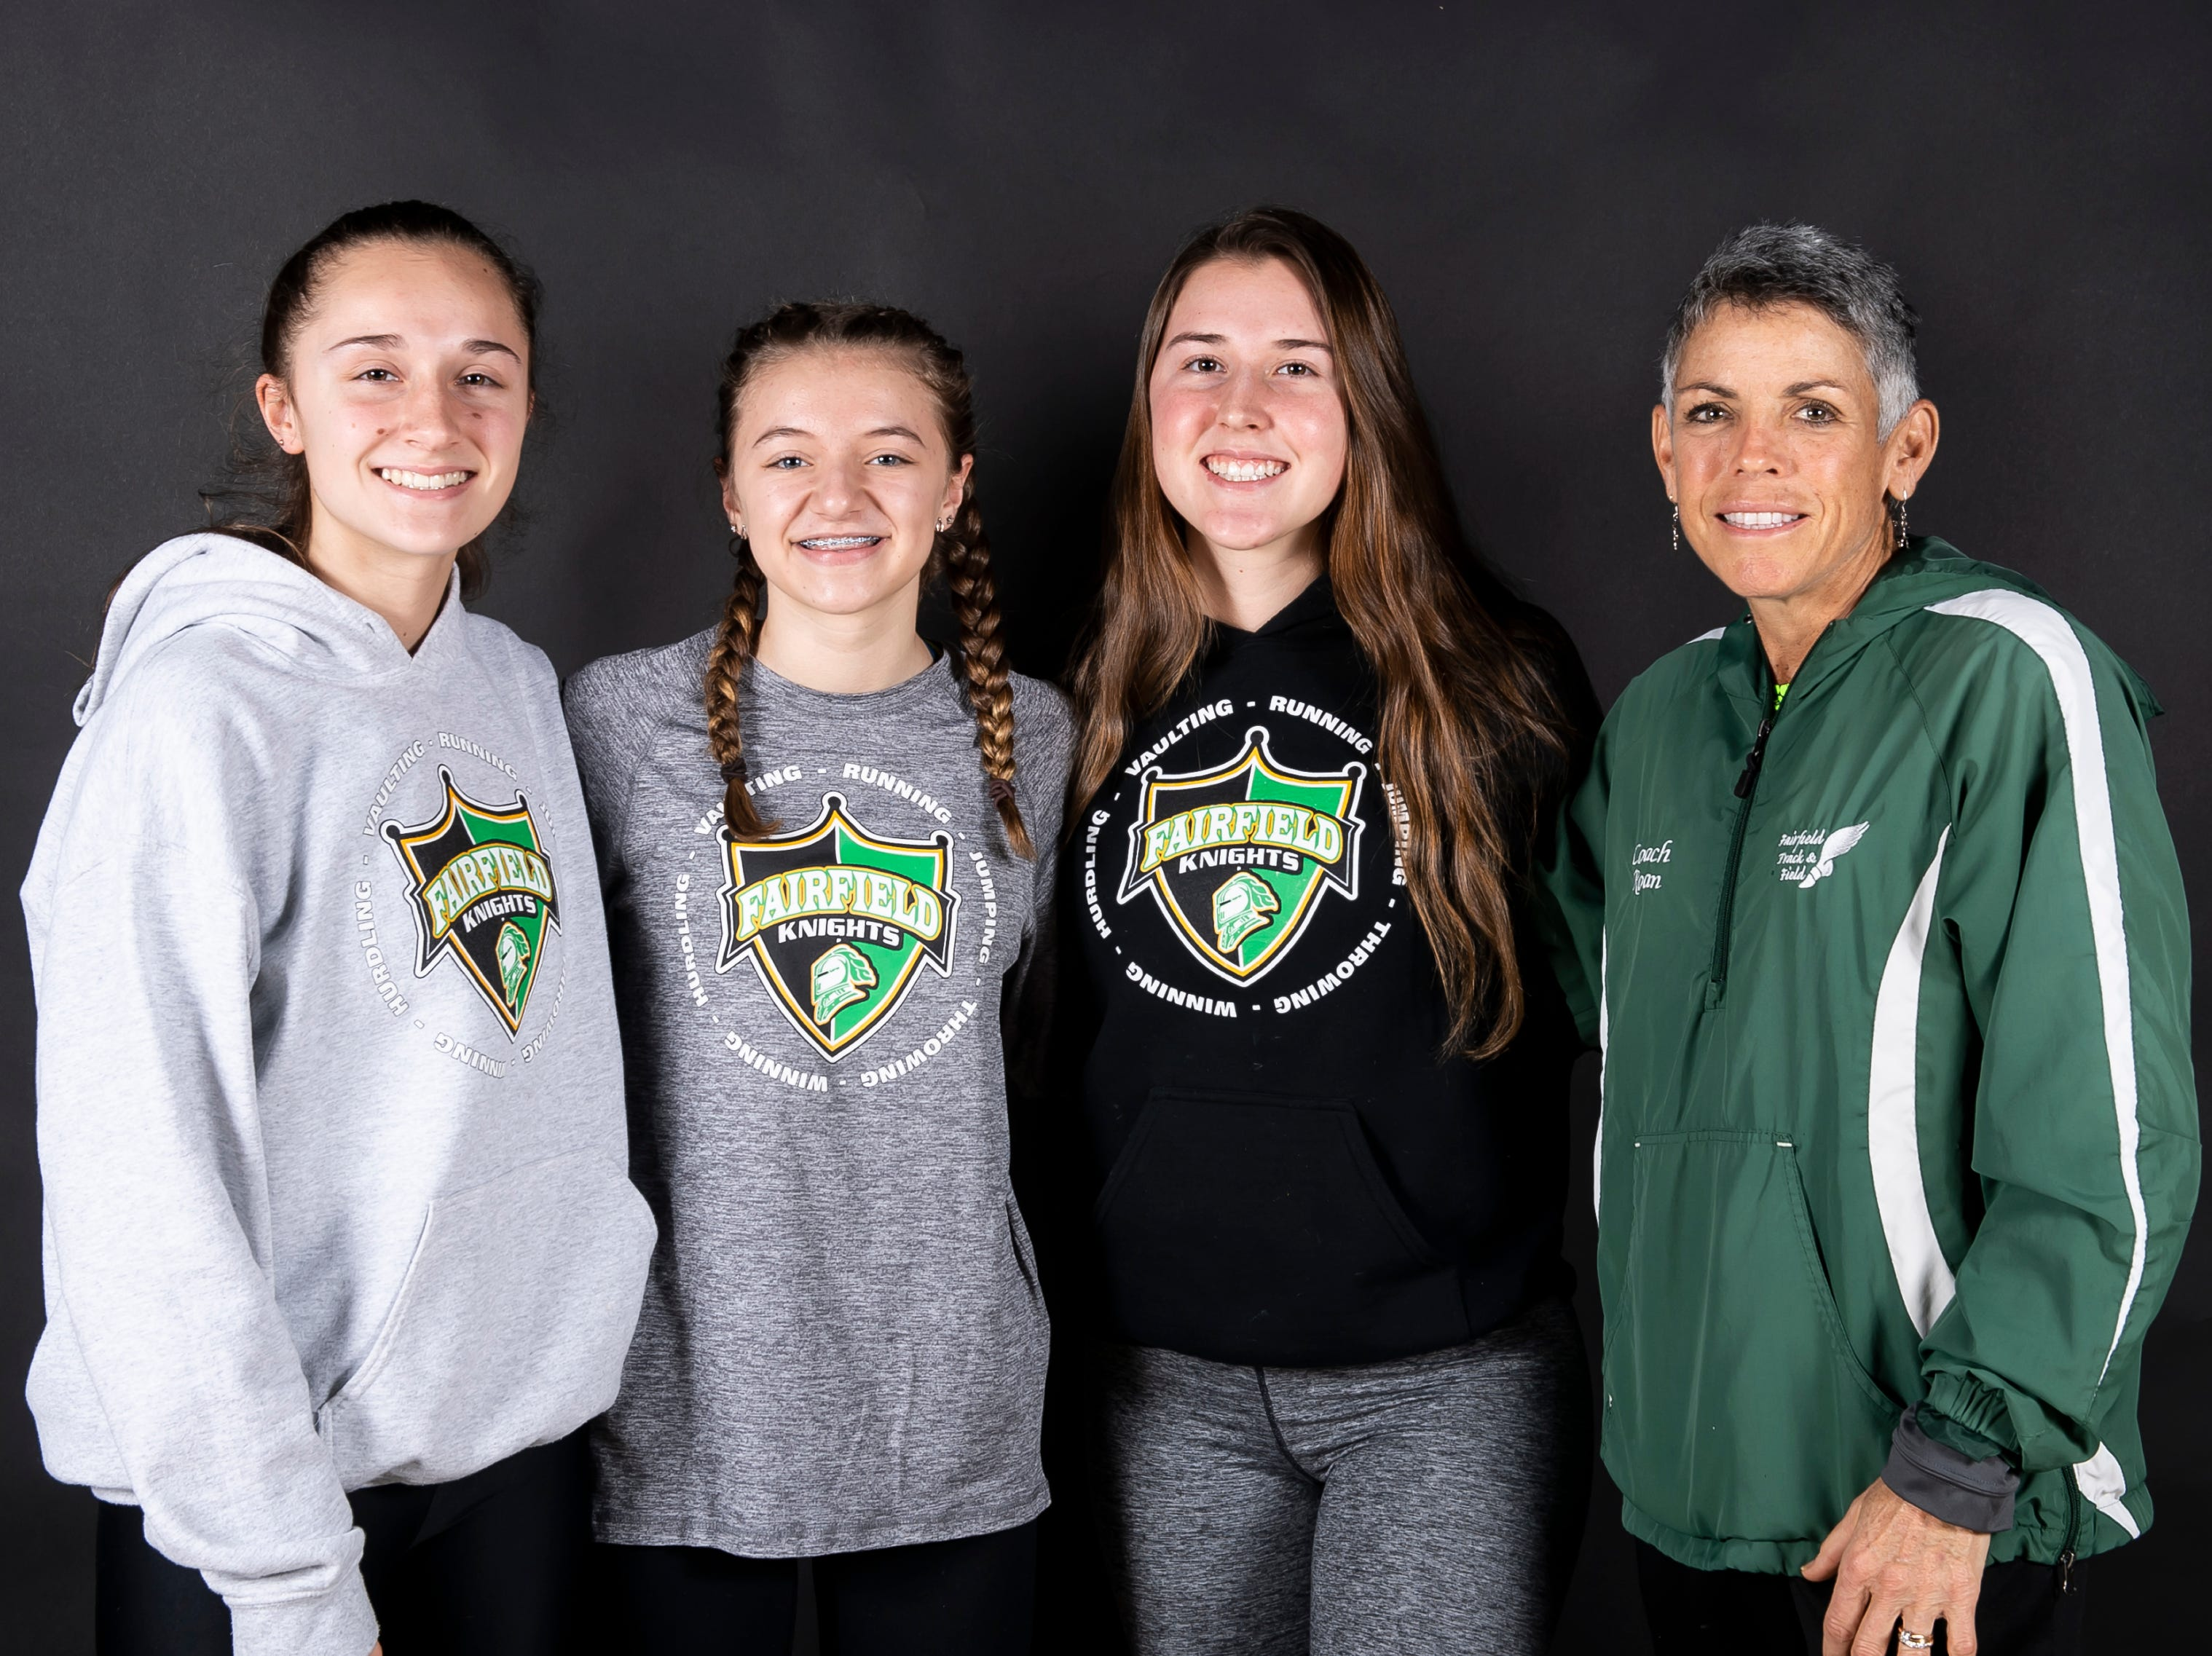 (From left) Fairfield girls track and field athletes Rio Strosnider, Morgan Dennison and Honey Strosnider pose with coach Marcia Roan in the GameTimePA photo booth during spring sports media day in York Sunday, March 10, 2019.